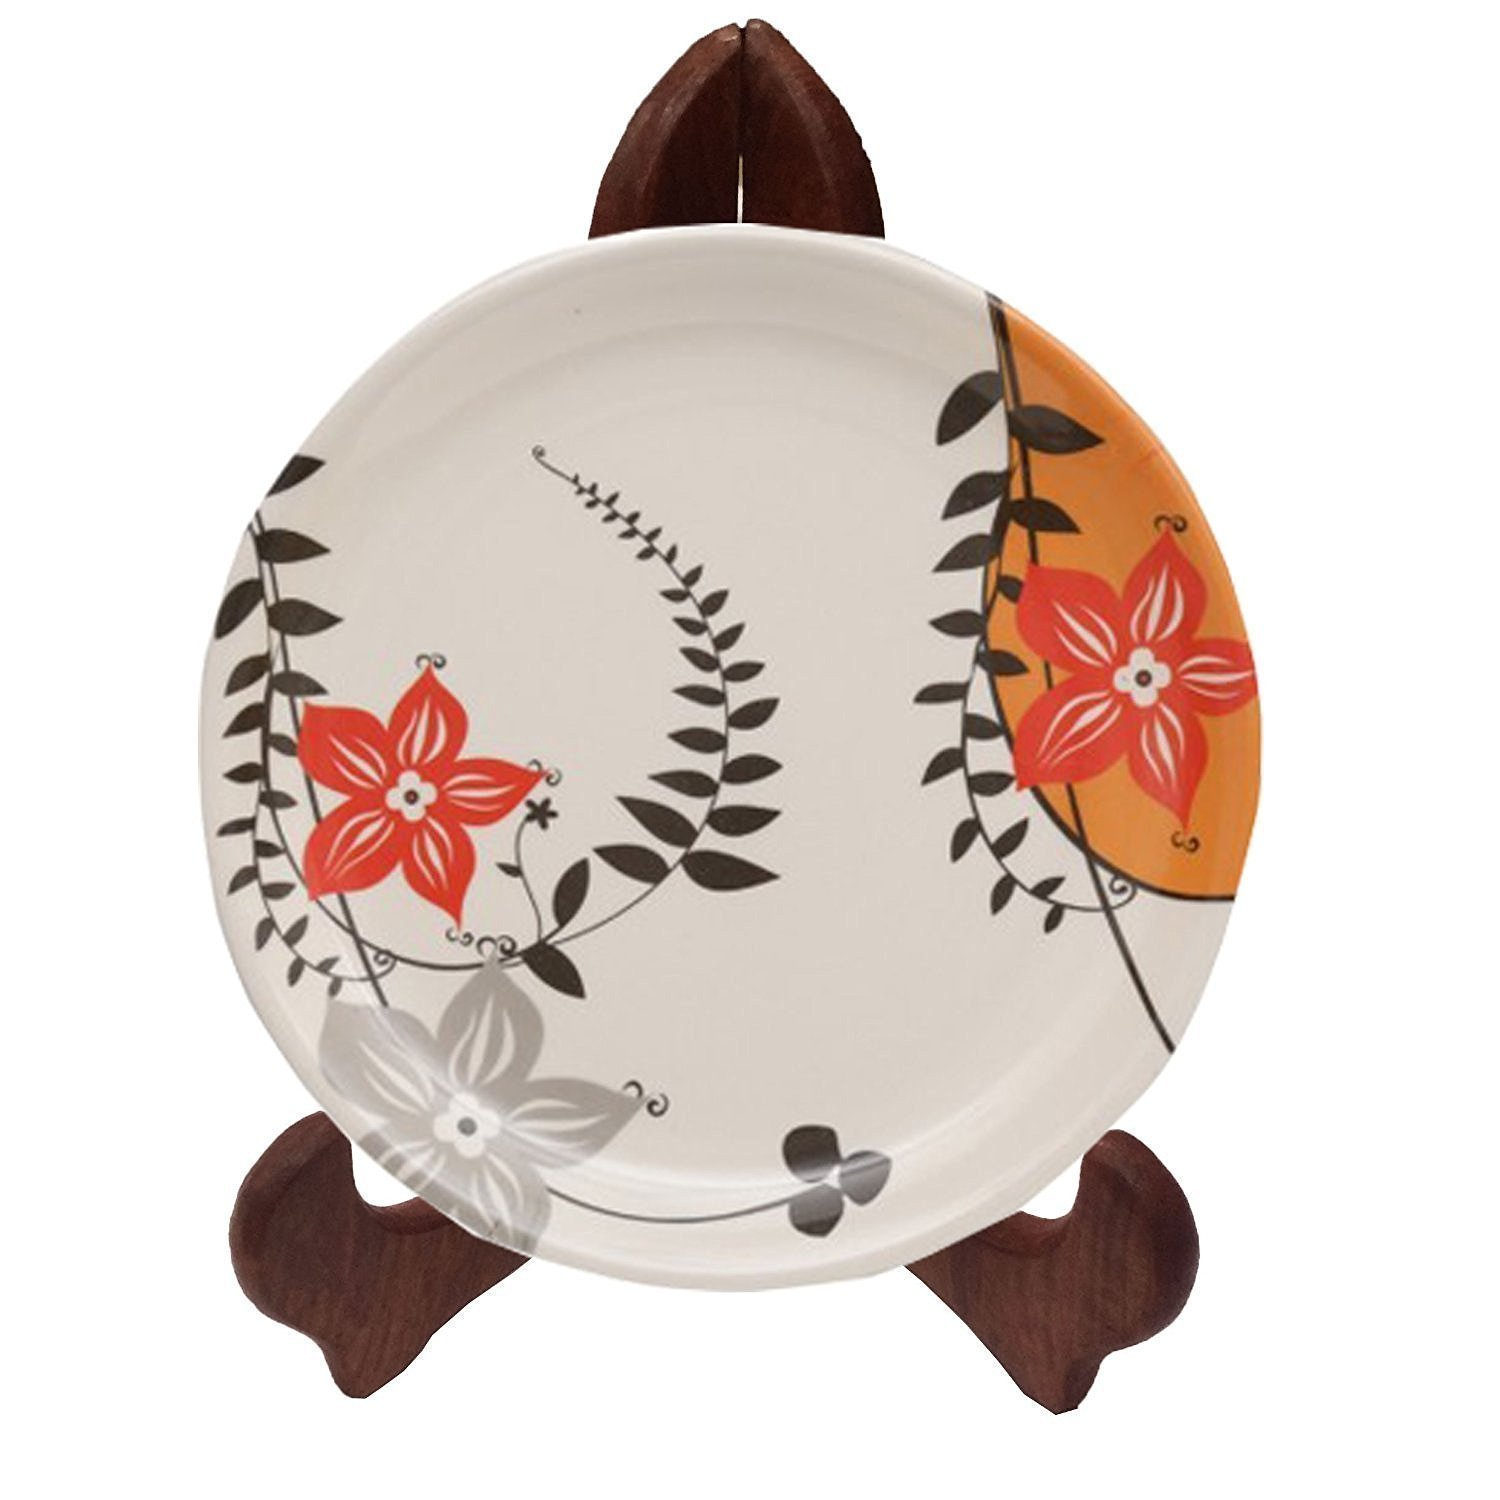 Handmade Decorative 10.50 Inch Wooden Plate or Photo Stand, Wooden Plate Holders, Plate Holders to Display Pictures or Other Items at Weddings, Home Decoration